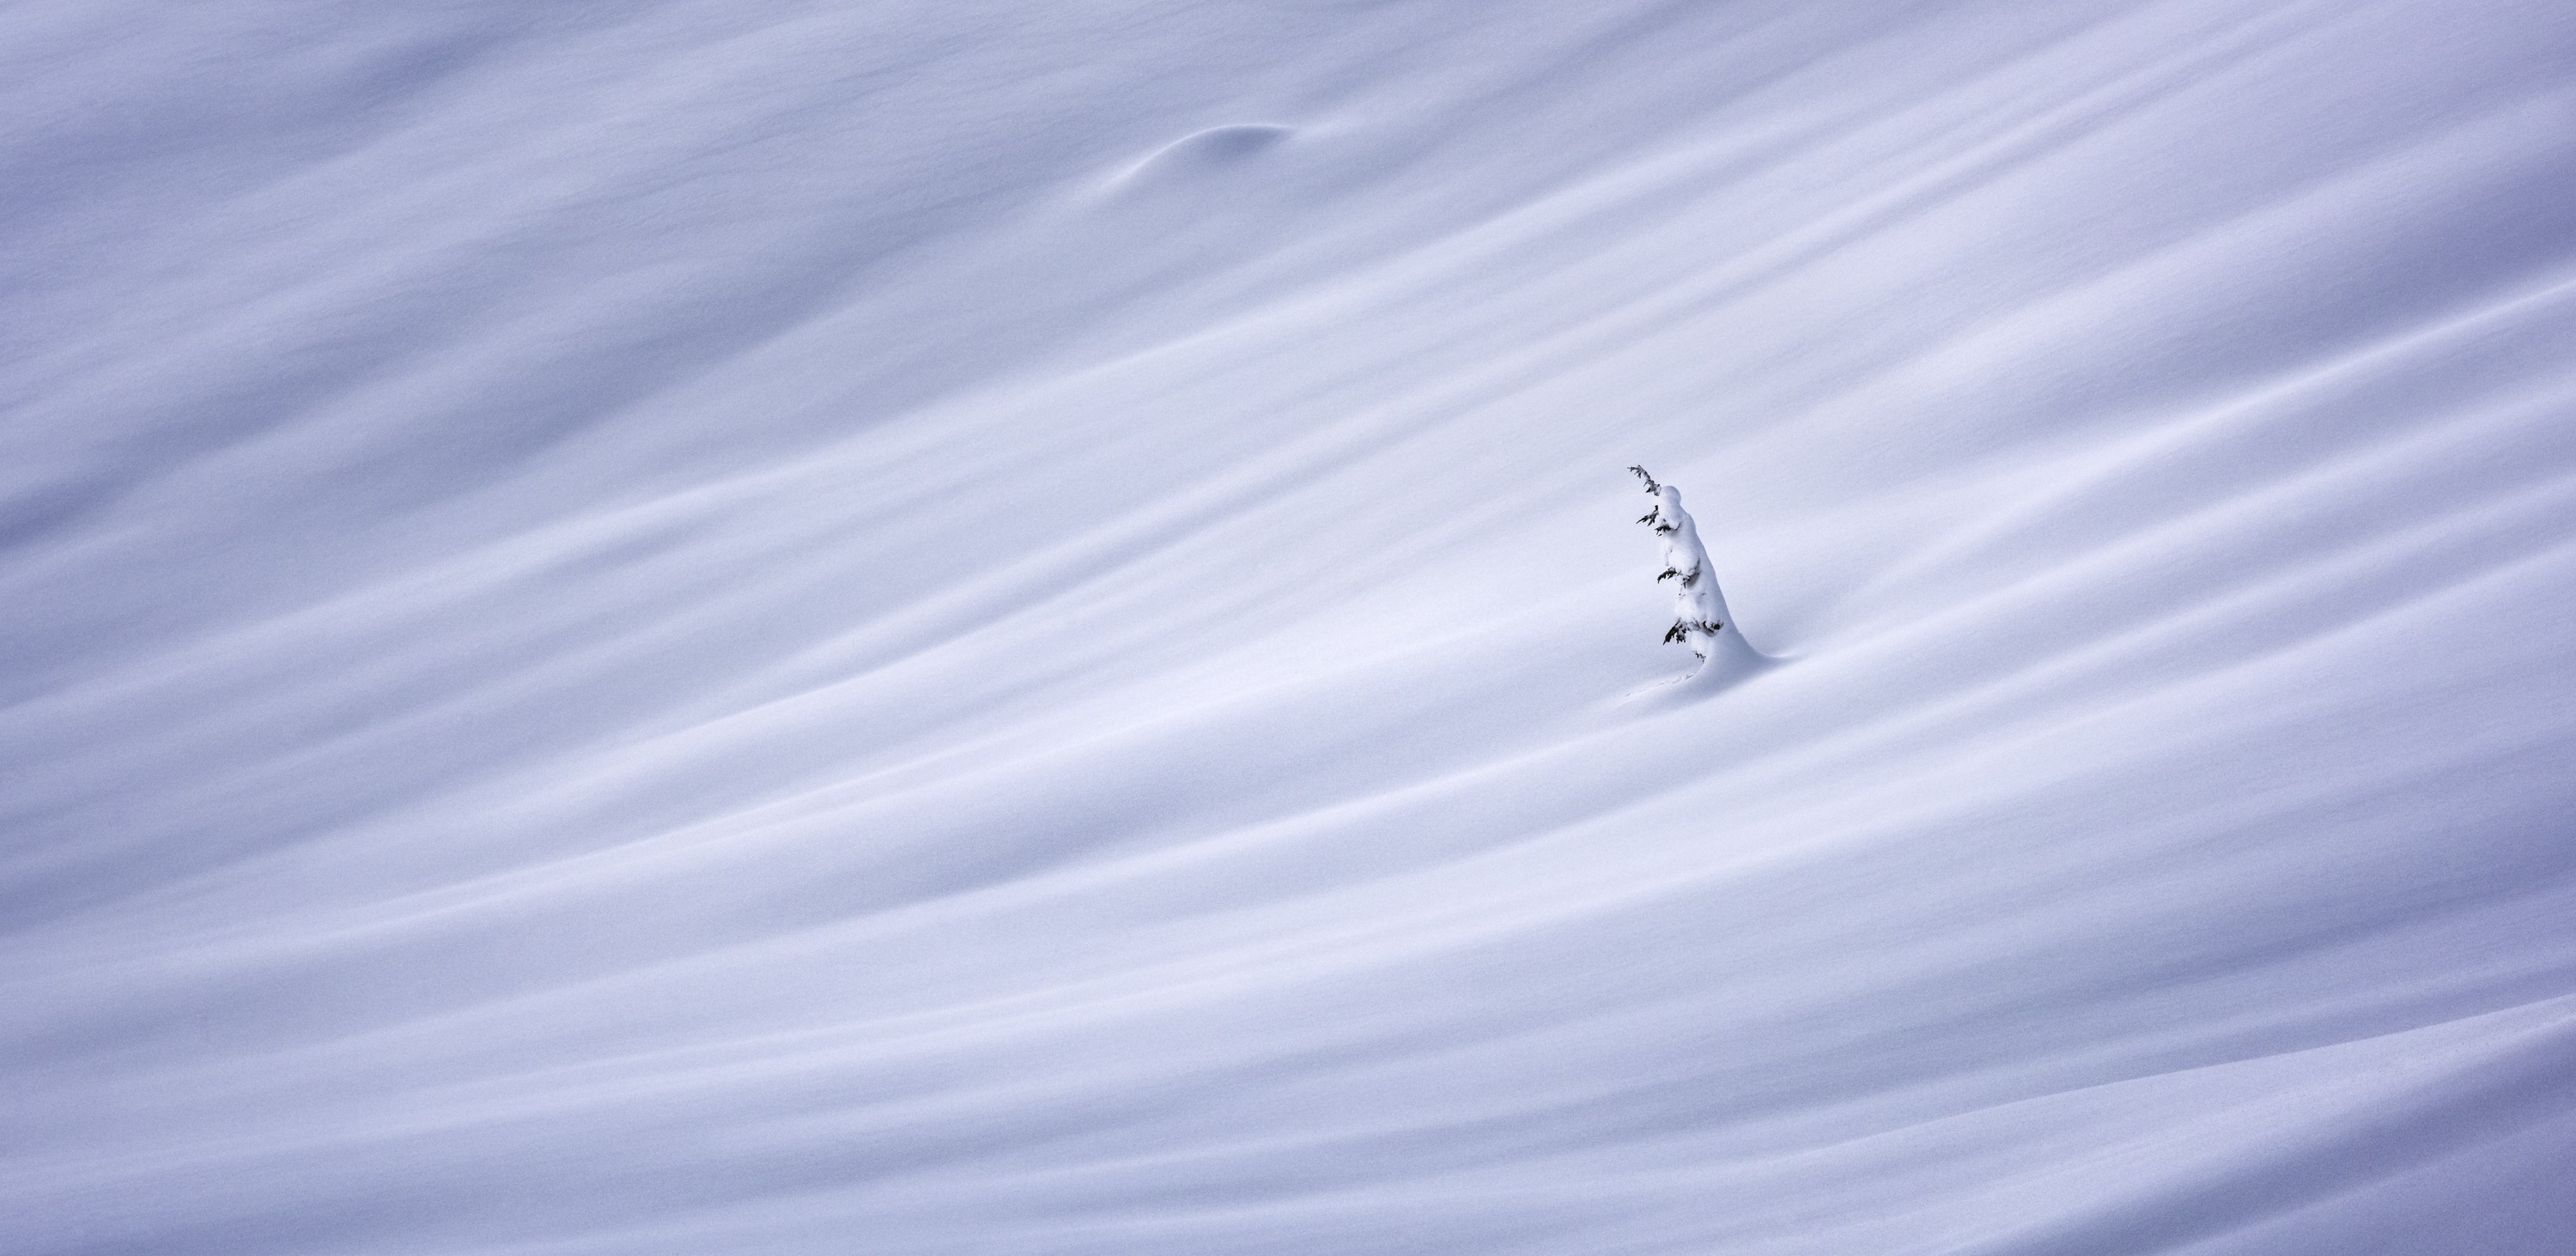 A fine art photograph of a single tree standing amongst a windswept hill blanketed in thick snow